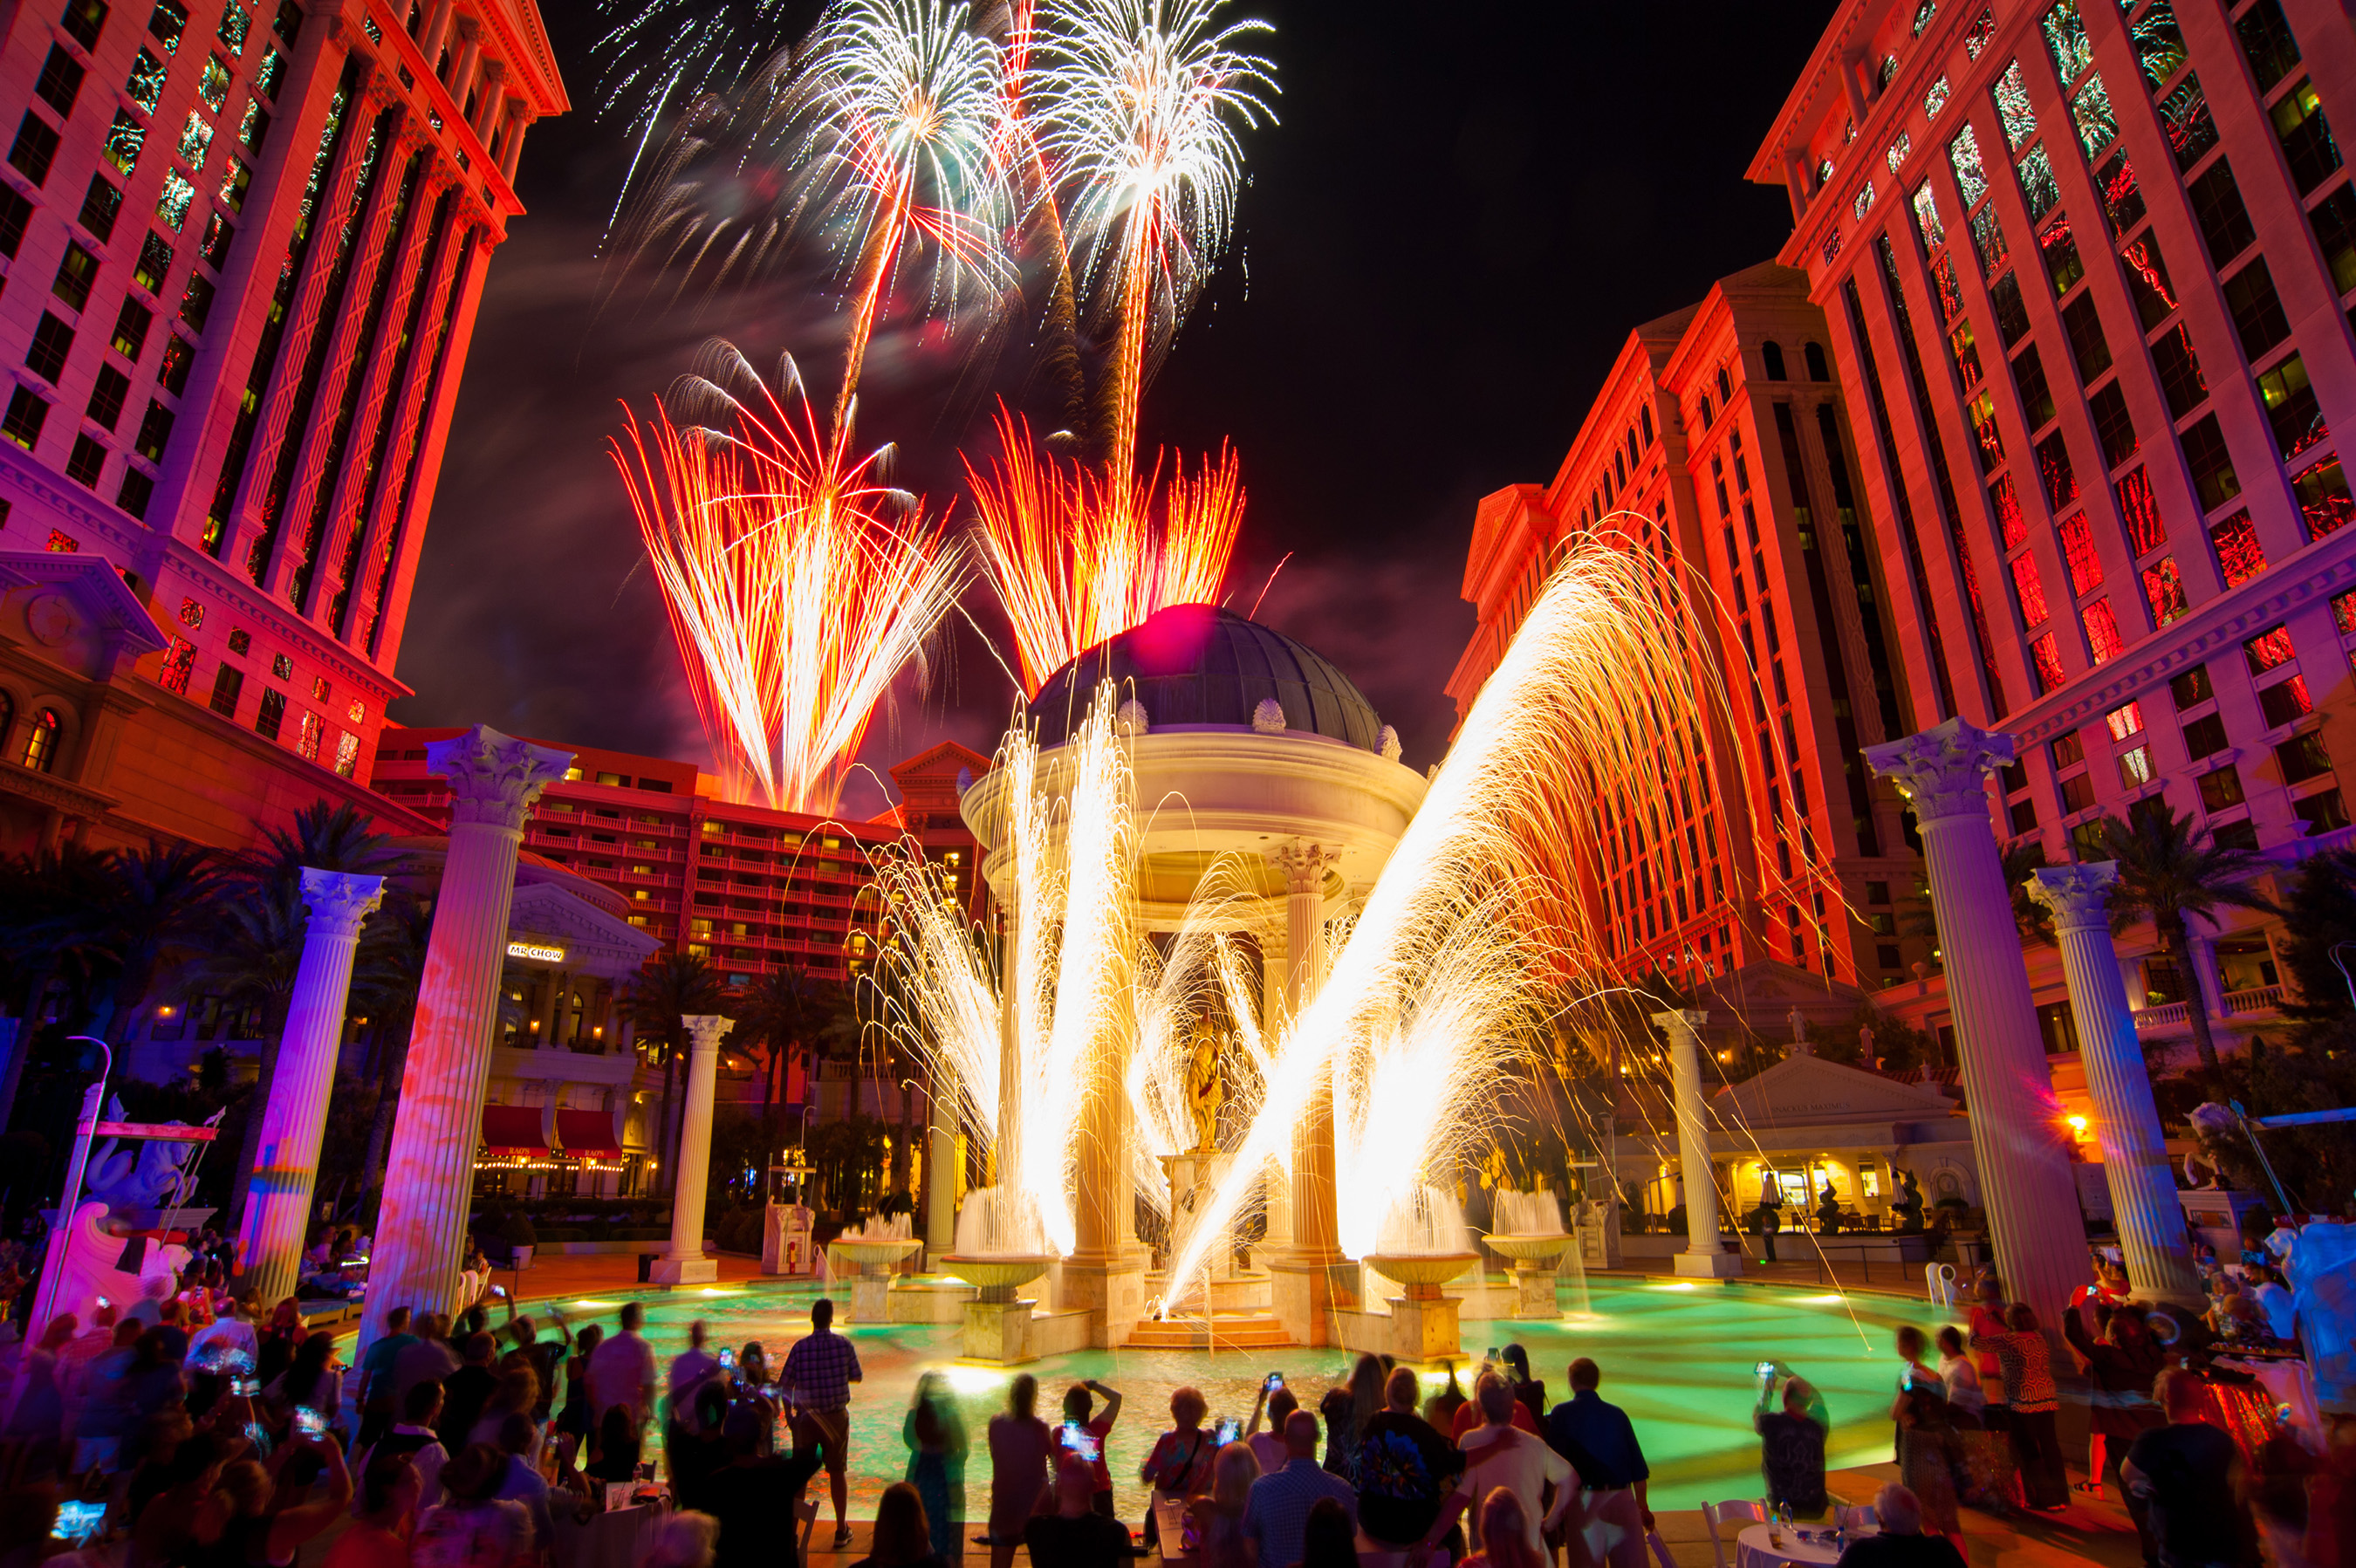 caesars palace celebrates 50th anniversary weekend with